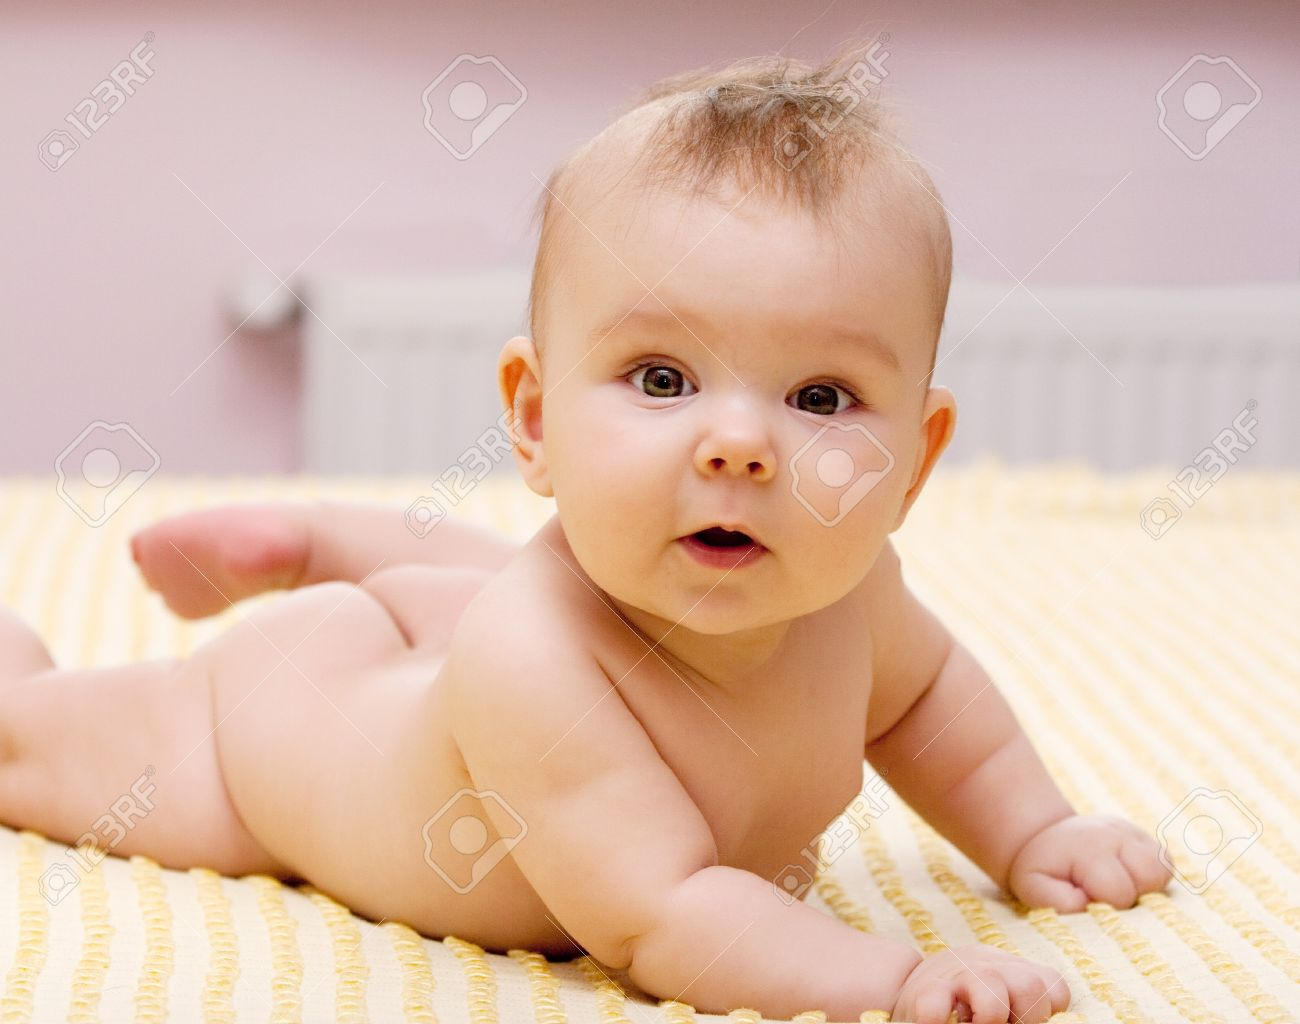 sweet baby photos  Sweet Baby Girl Stock Photo, Picture And Royalty Free Image. Image ...